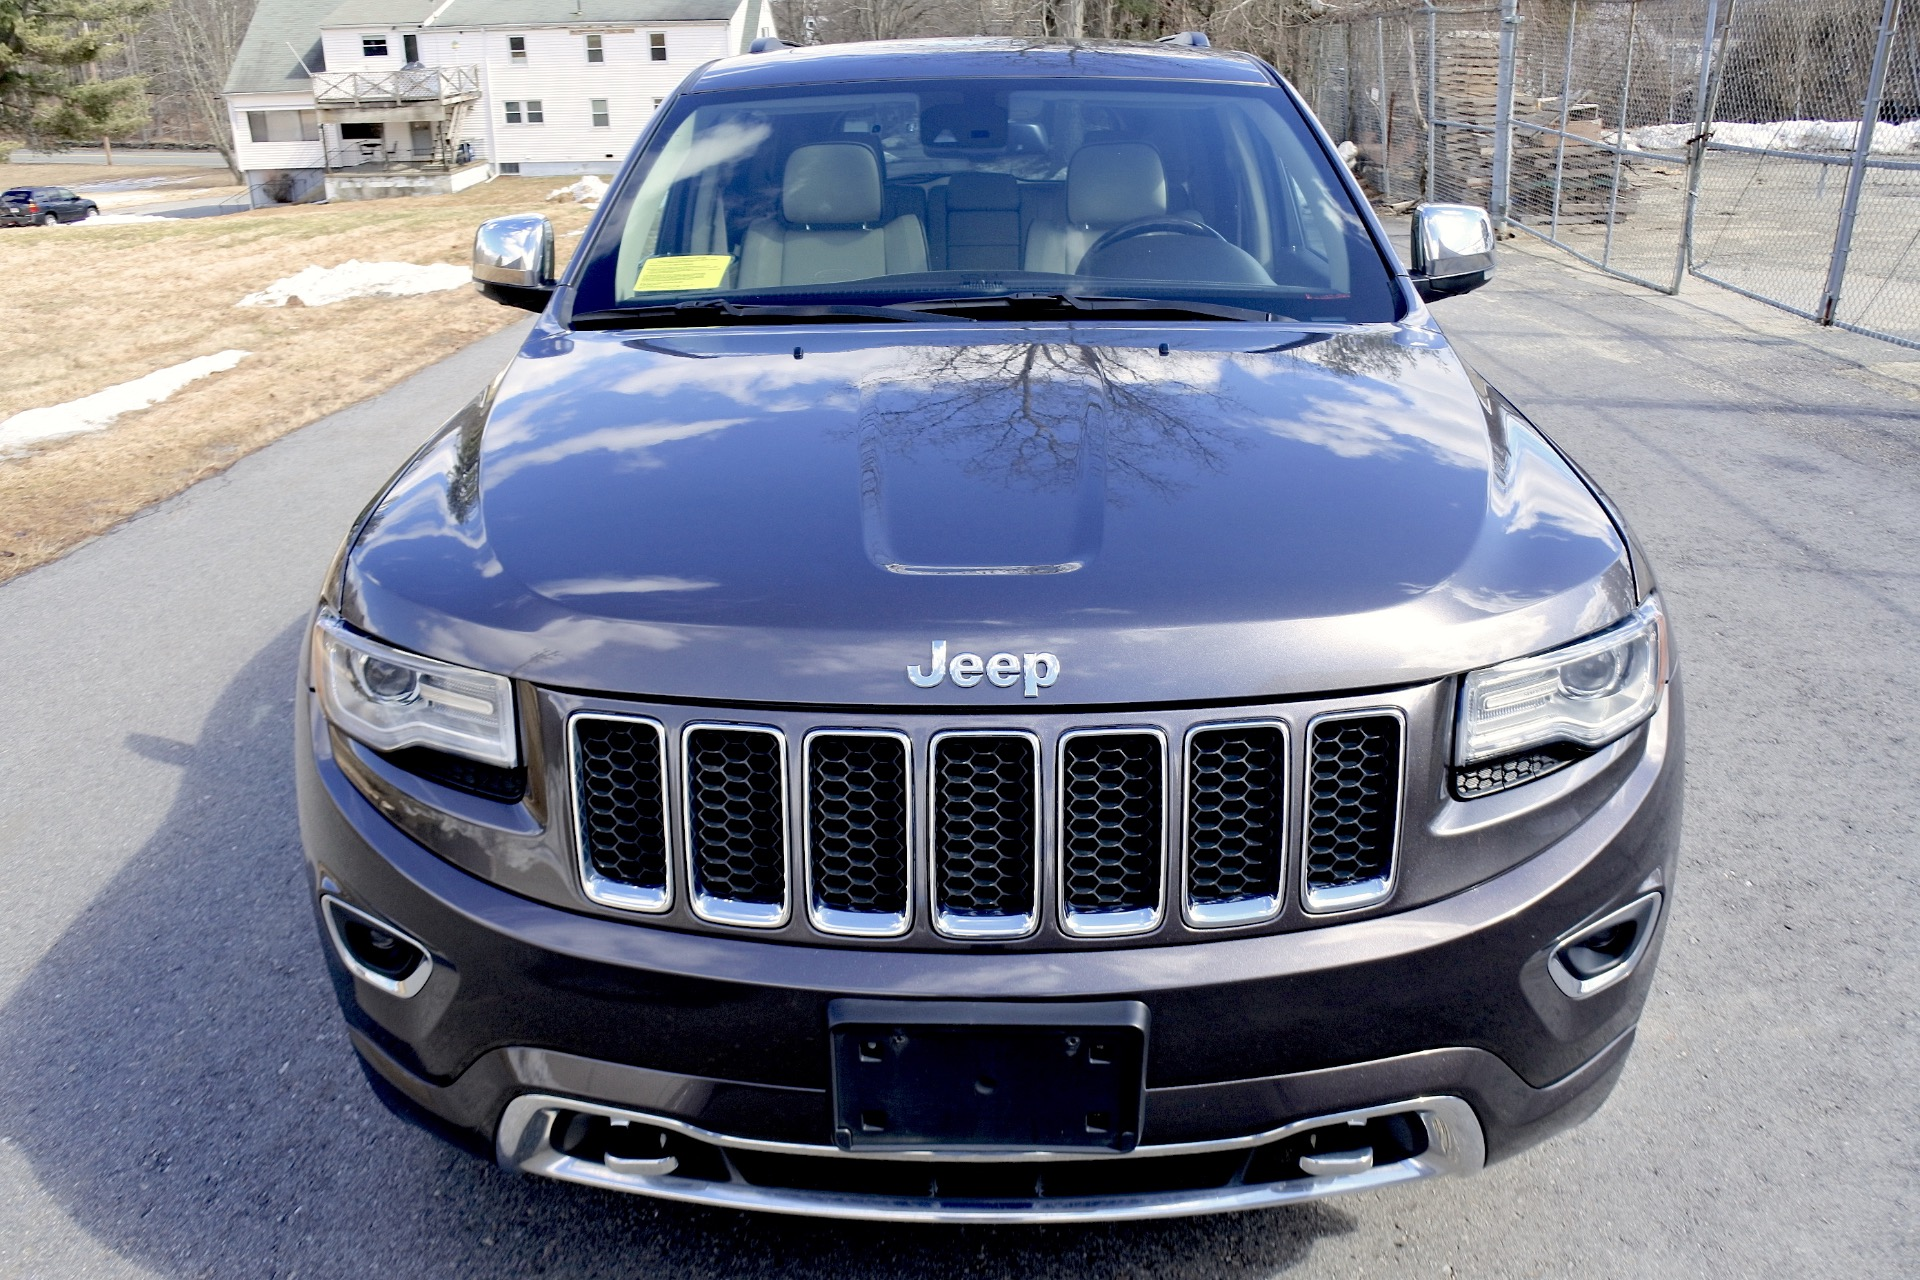 Used 2014 Jeep Grand Cherokee 4WD 4dr Overland Used 2014 Jeep Grand Cherokee 4WD 4dr Overland for sale  at Metro West Motorcars LLC in Shrewsbury MA 8